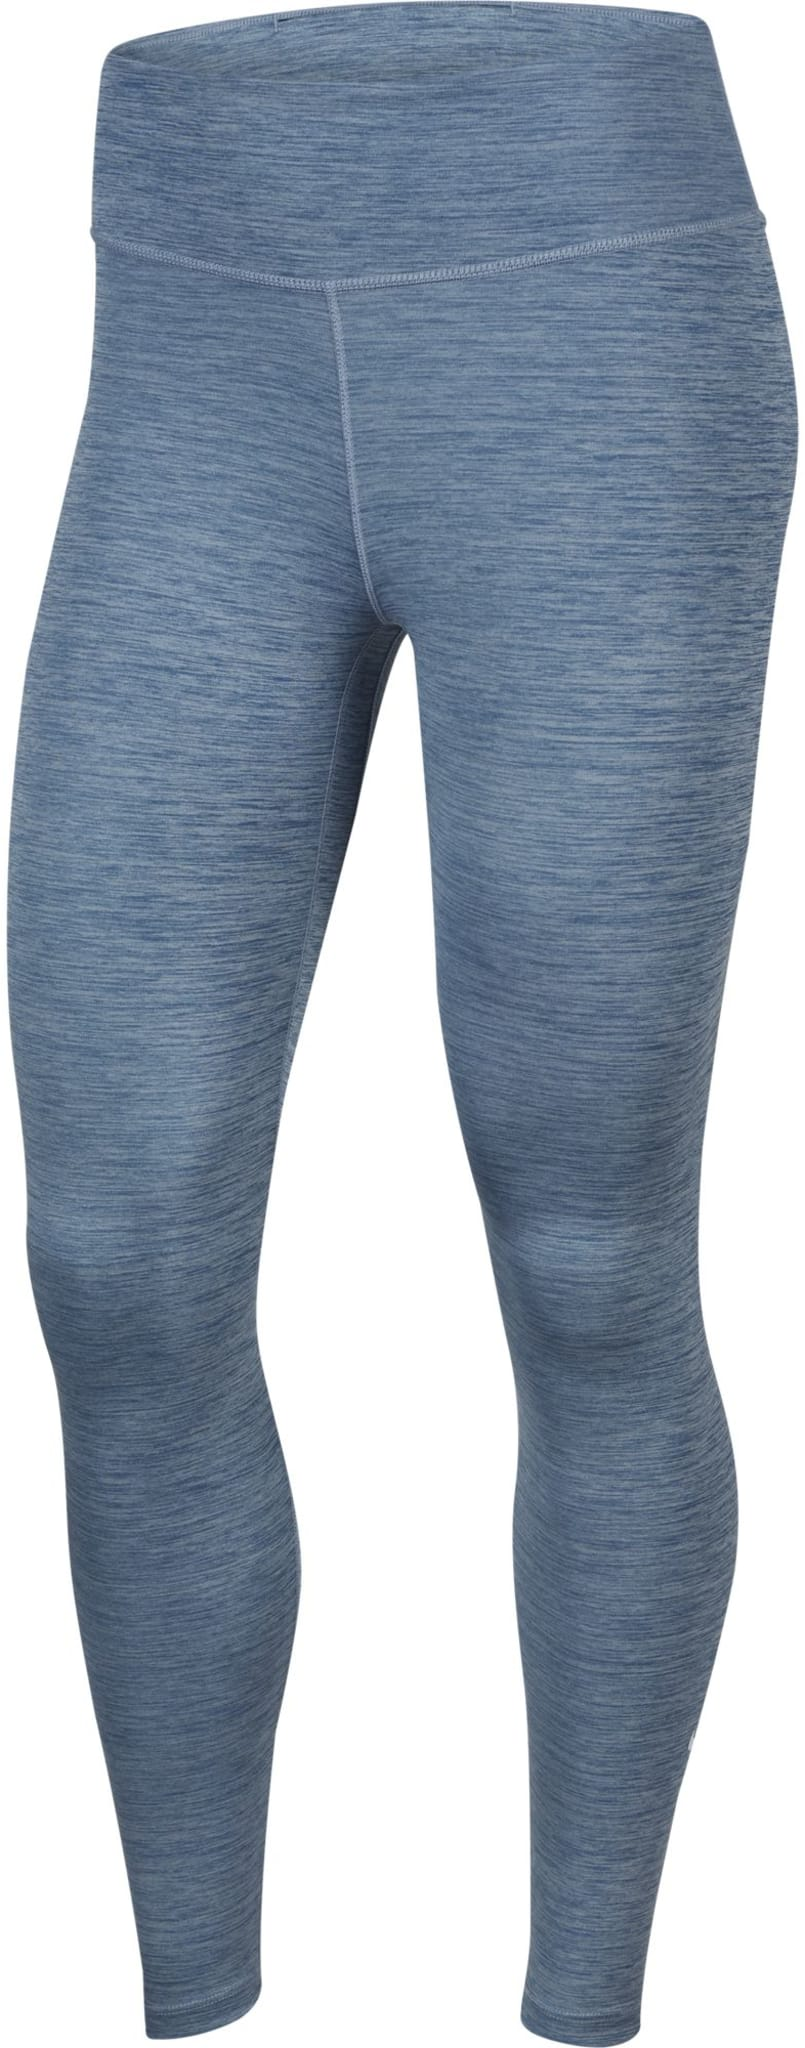 All-In Training Tights W